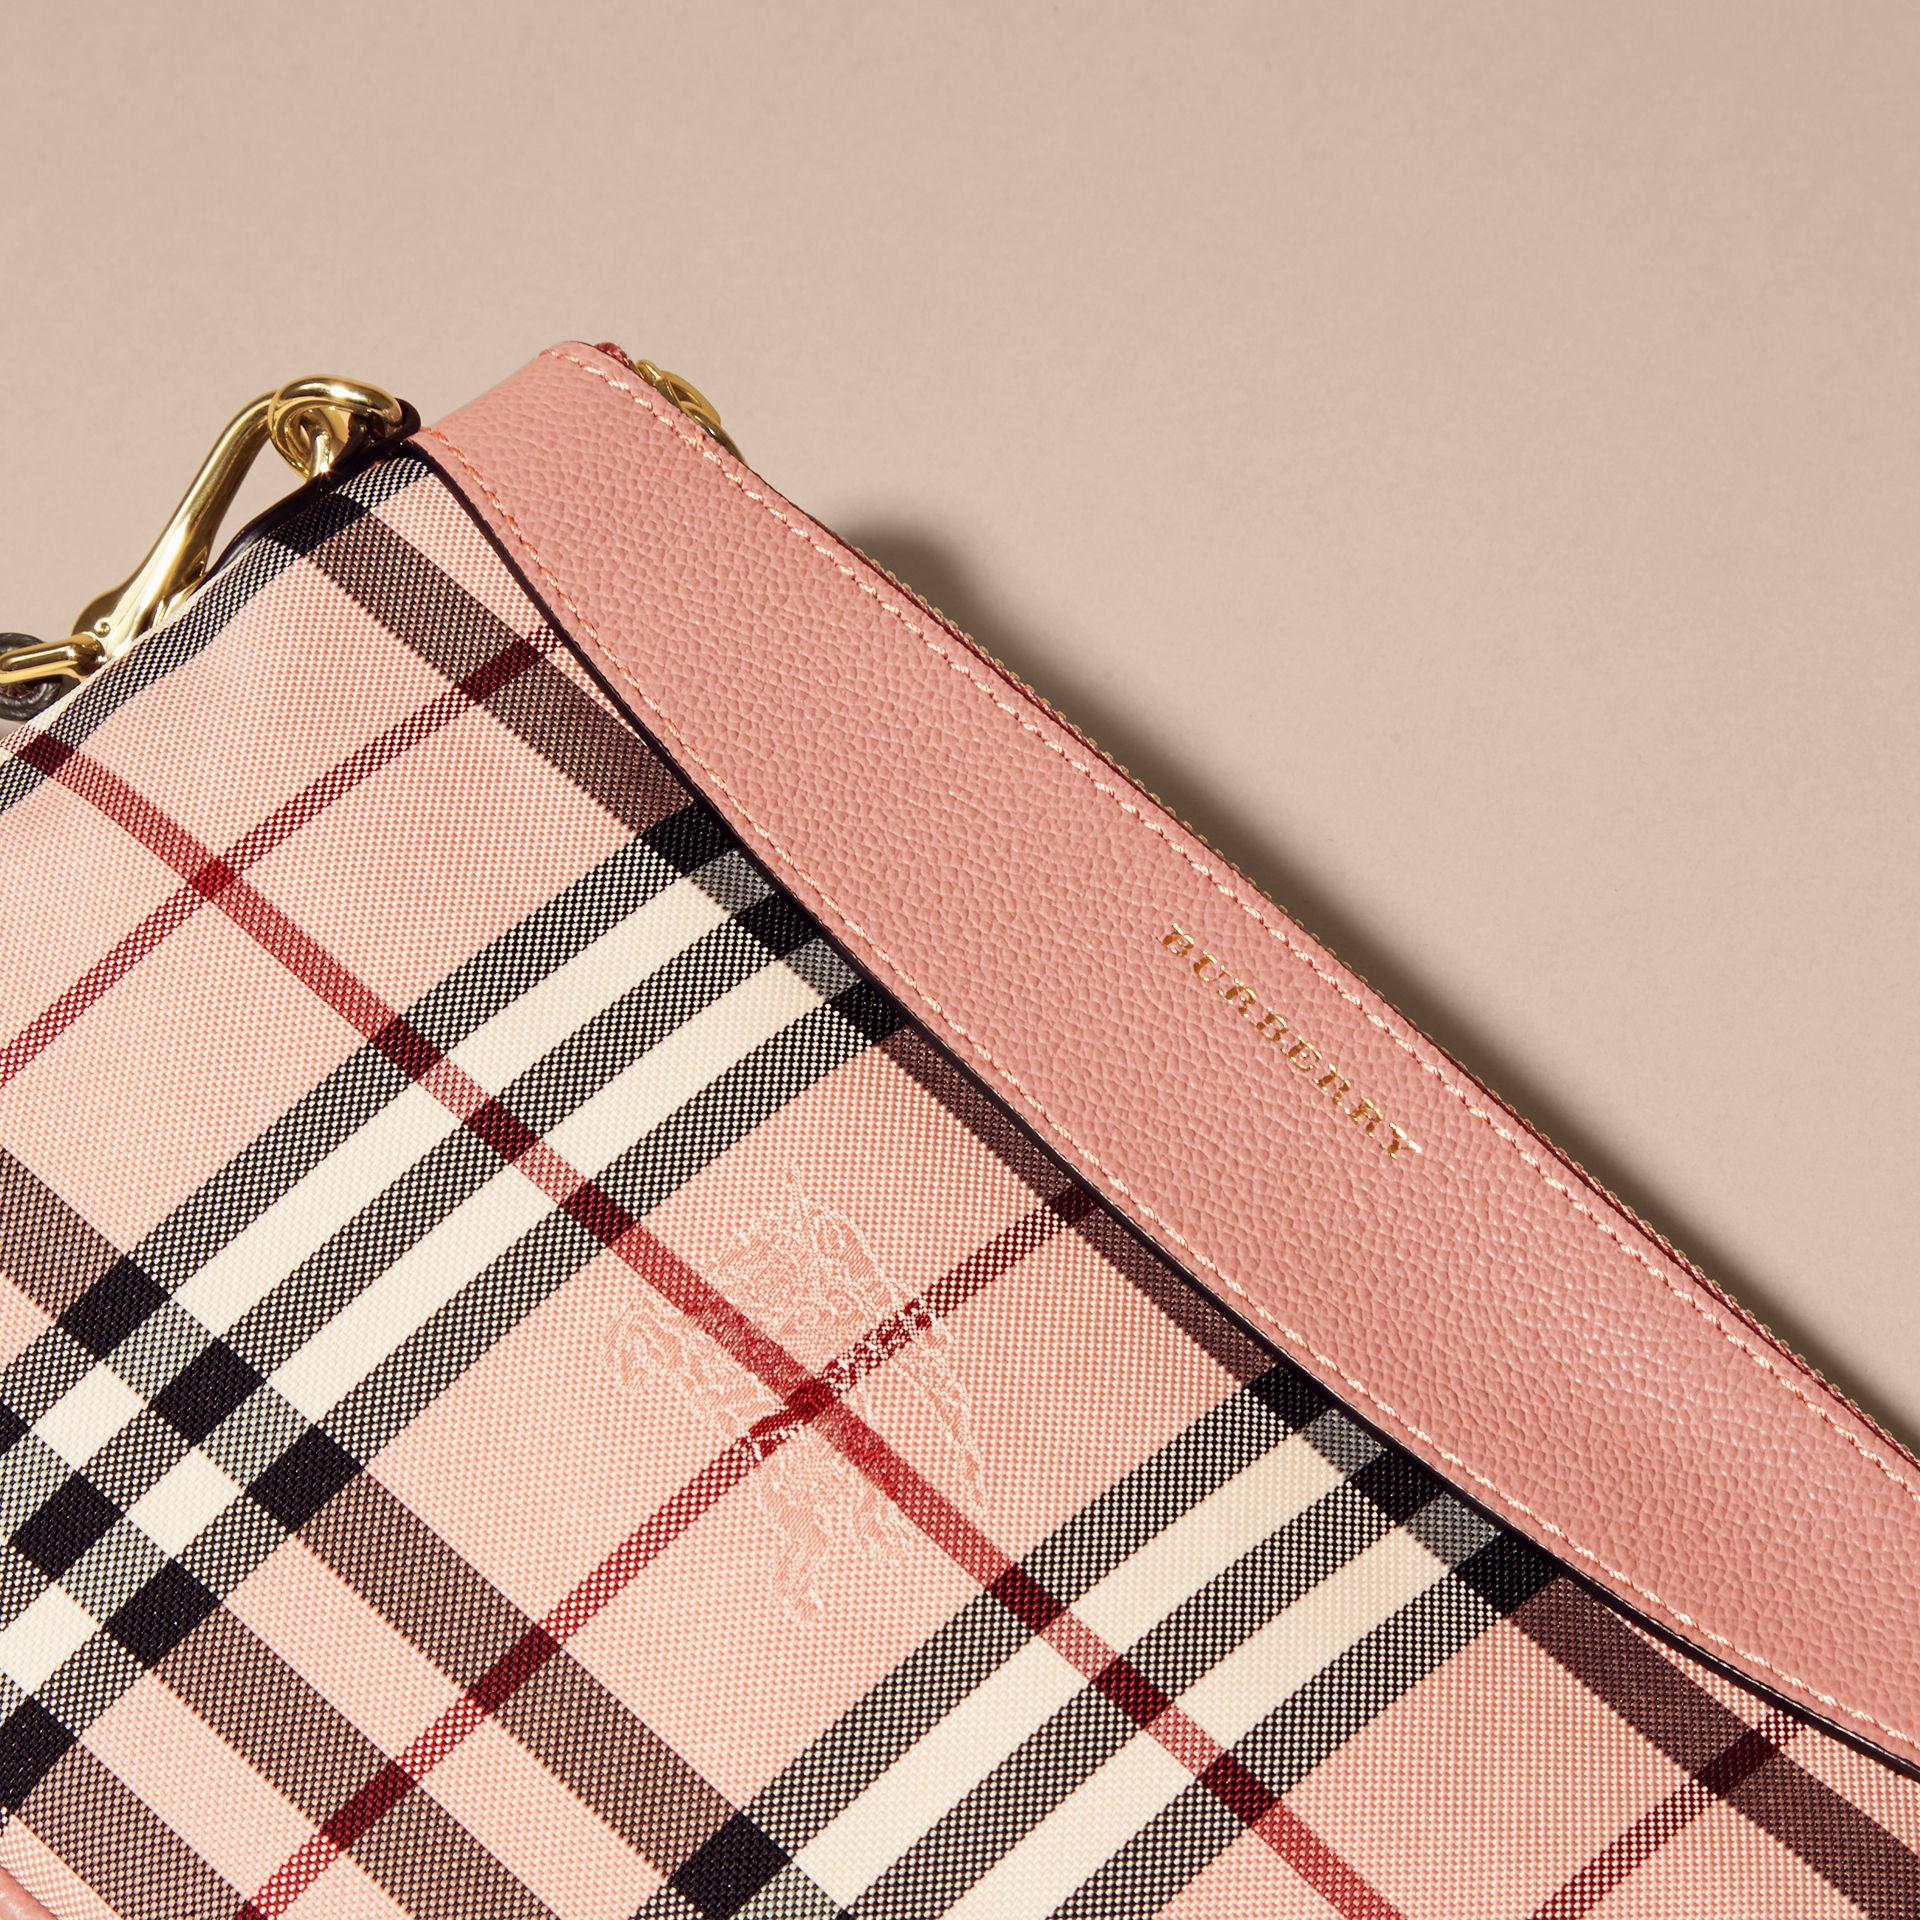 1381ecb5918b Lyst - Burberry Horseferry Check And Leather Clutch Bag Ash Rose ...